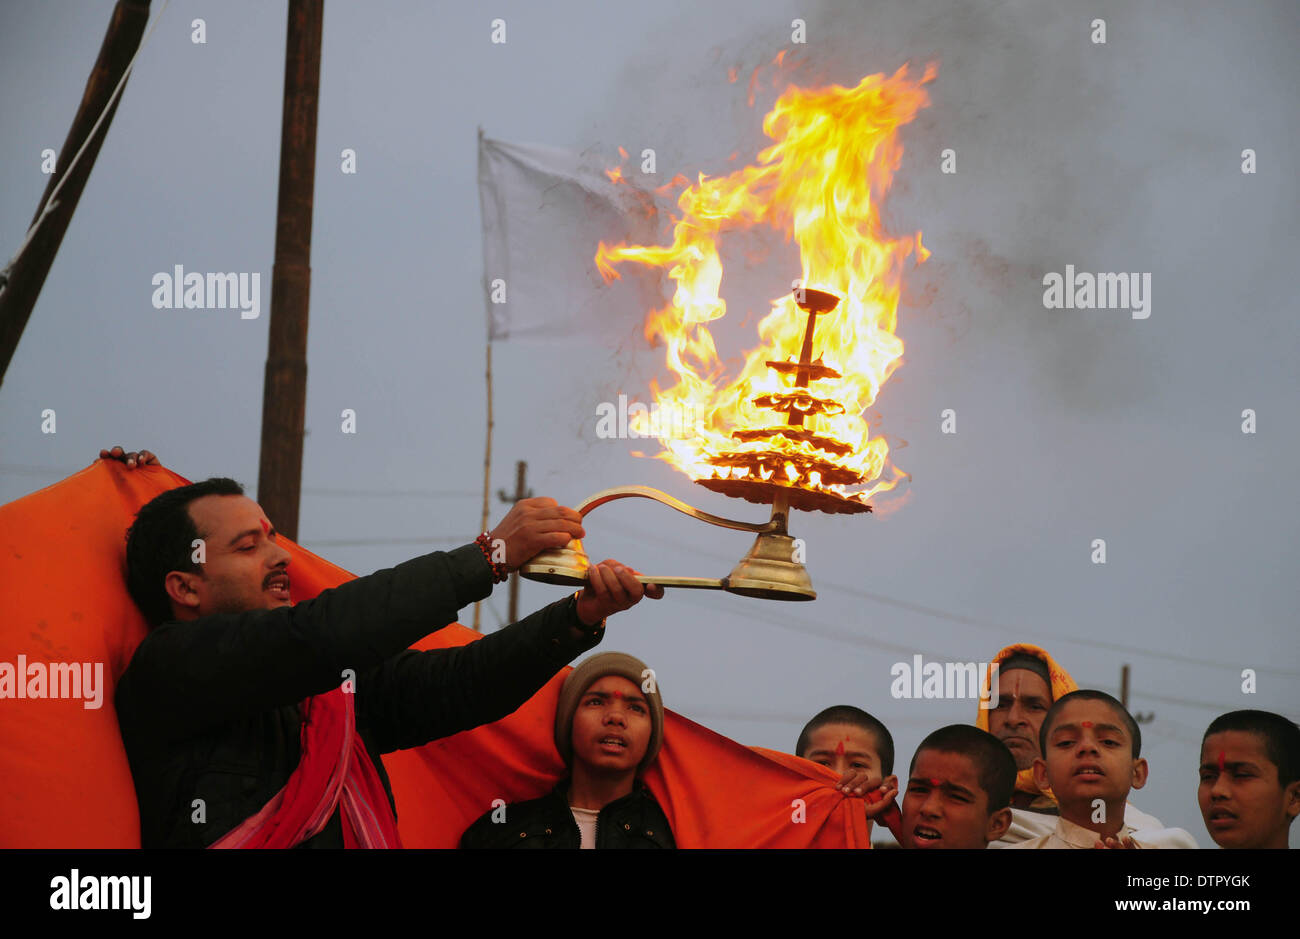 """Allahabad, India - 22--02-2014:  An Indian Hindu priest rotates a traditional oil lamp as he performs evening rituals at the Sangam, the confluence of the Rivers Ganges, Yamuna and mythical Saraswati during the annual traditional fair of """"Magh Mela"""" in Allahabad, India, Friday, Feb. 22, 2014. Hundreds of thousands of devout Hindus are expected to take holy dips at the confluence during the astronomically auspicious period of over 45 days celebrated as Magh Mela. Credit:  PACIFIC PRESS/Alamy Live News - Stock Image"""